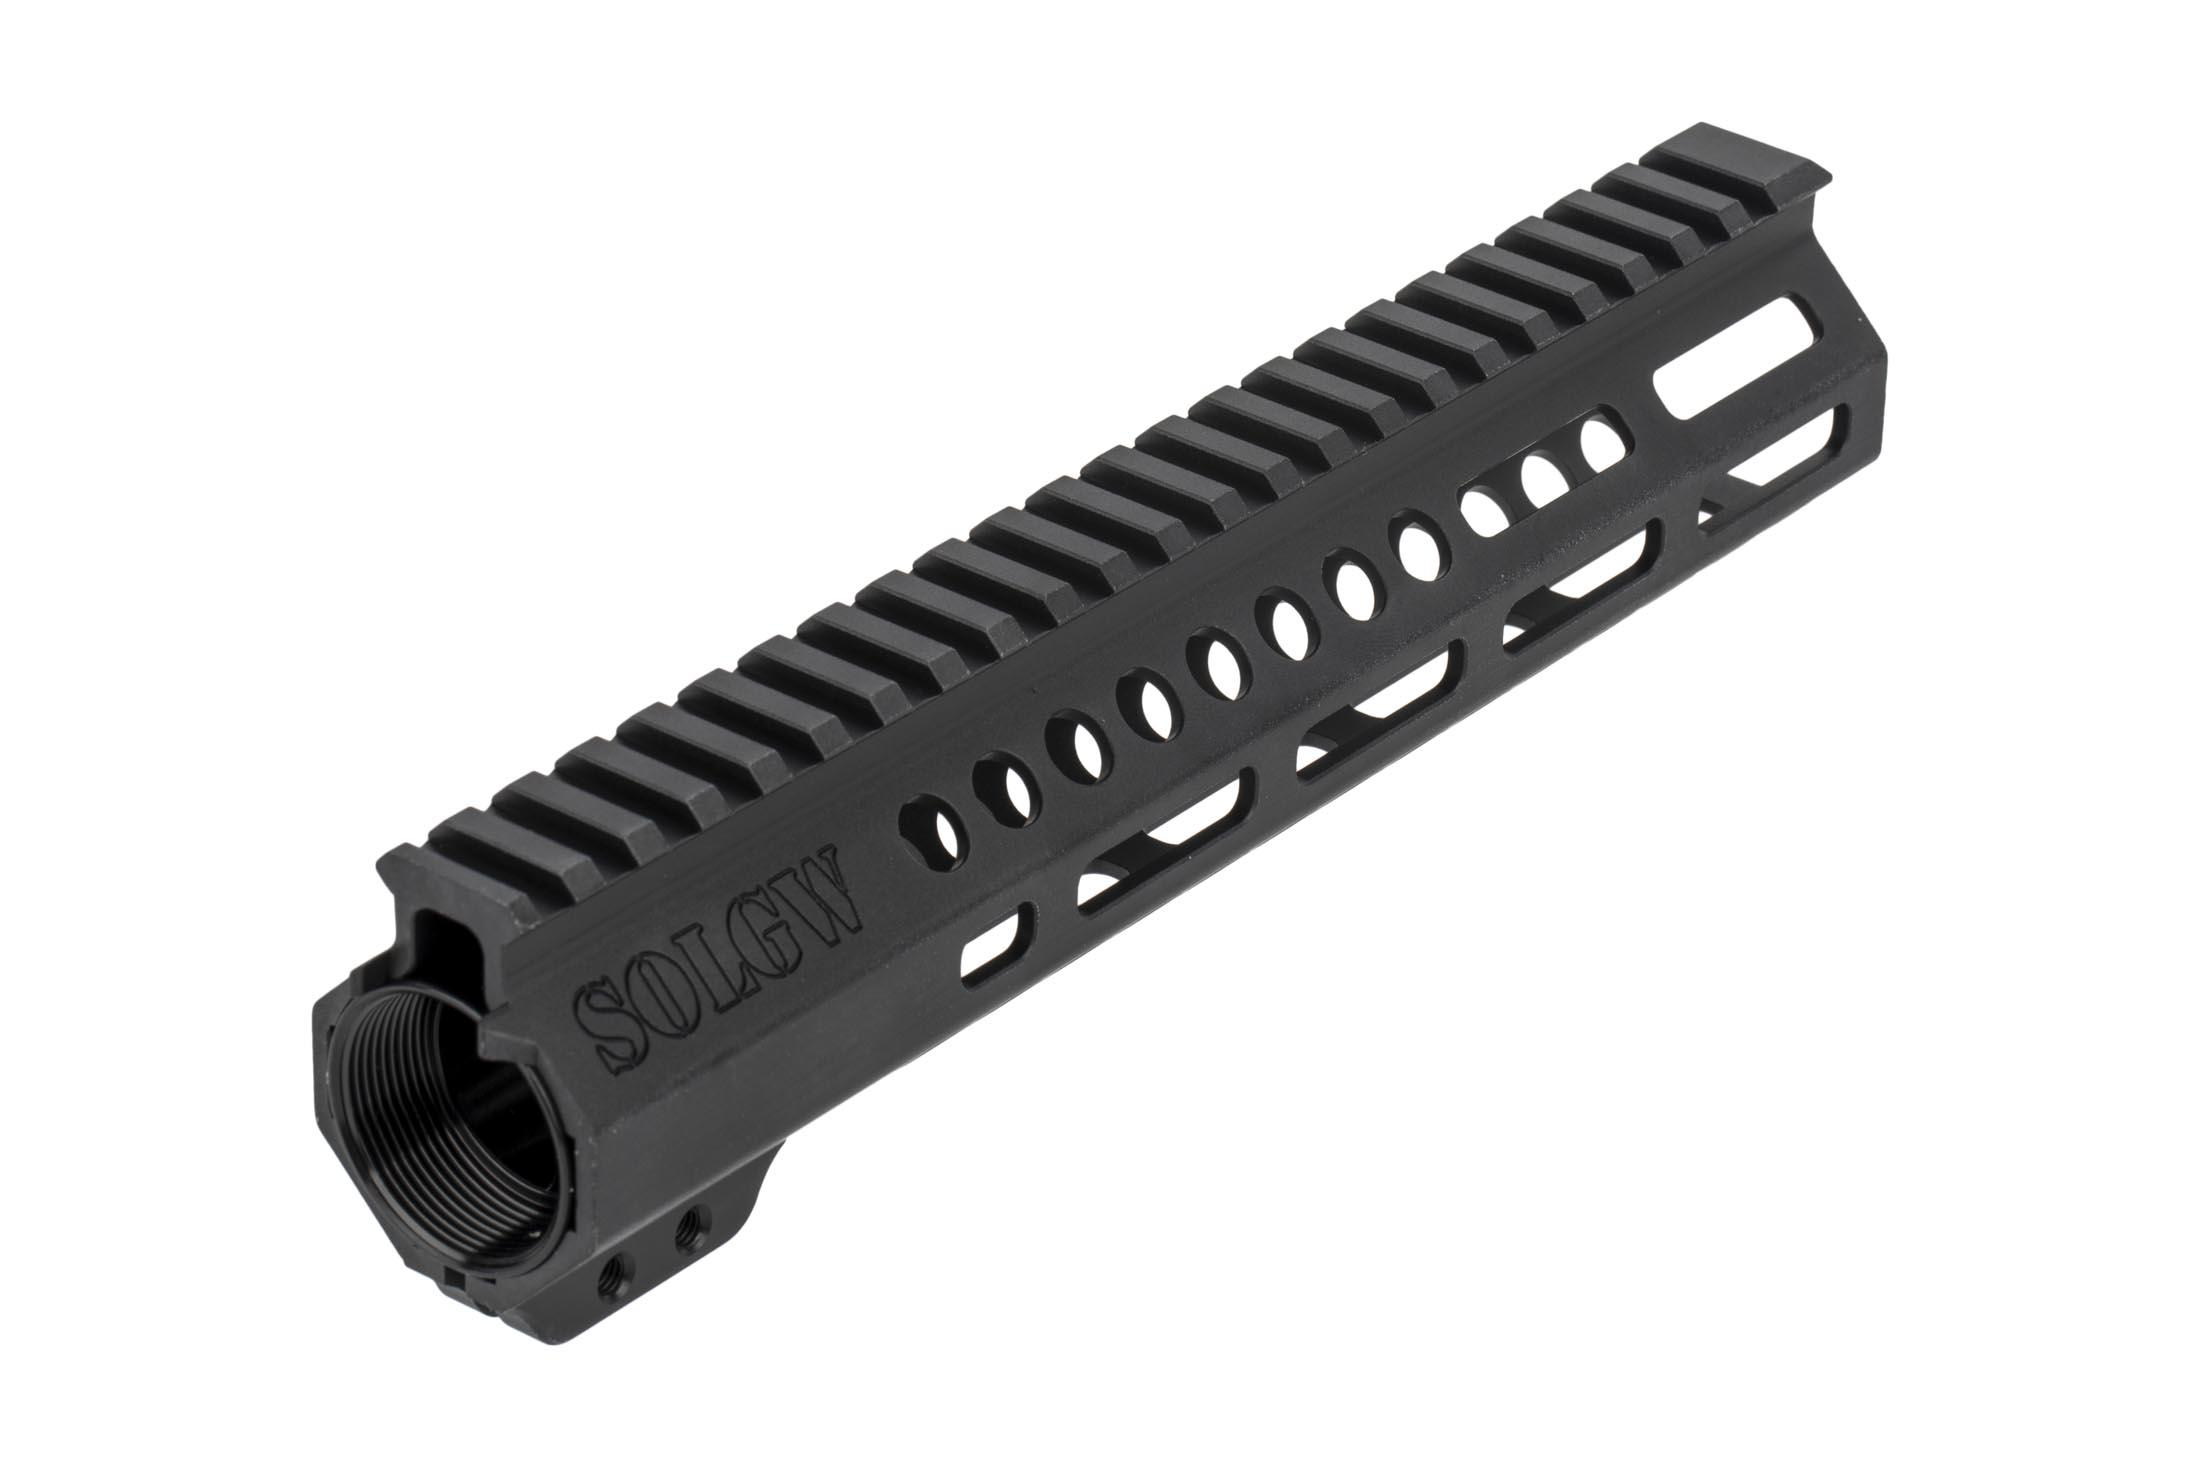 SOLGW 9.5in EXO 2 freefloat AR-15 handgaurd features dual anti-rotation tabs for secure installation